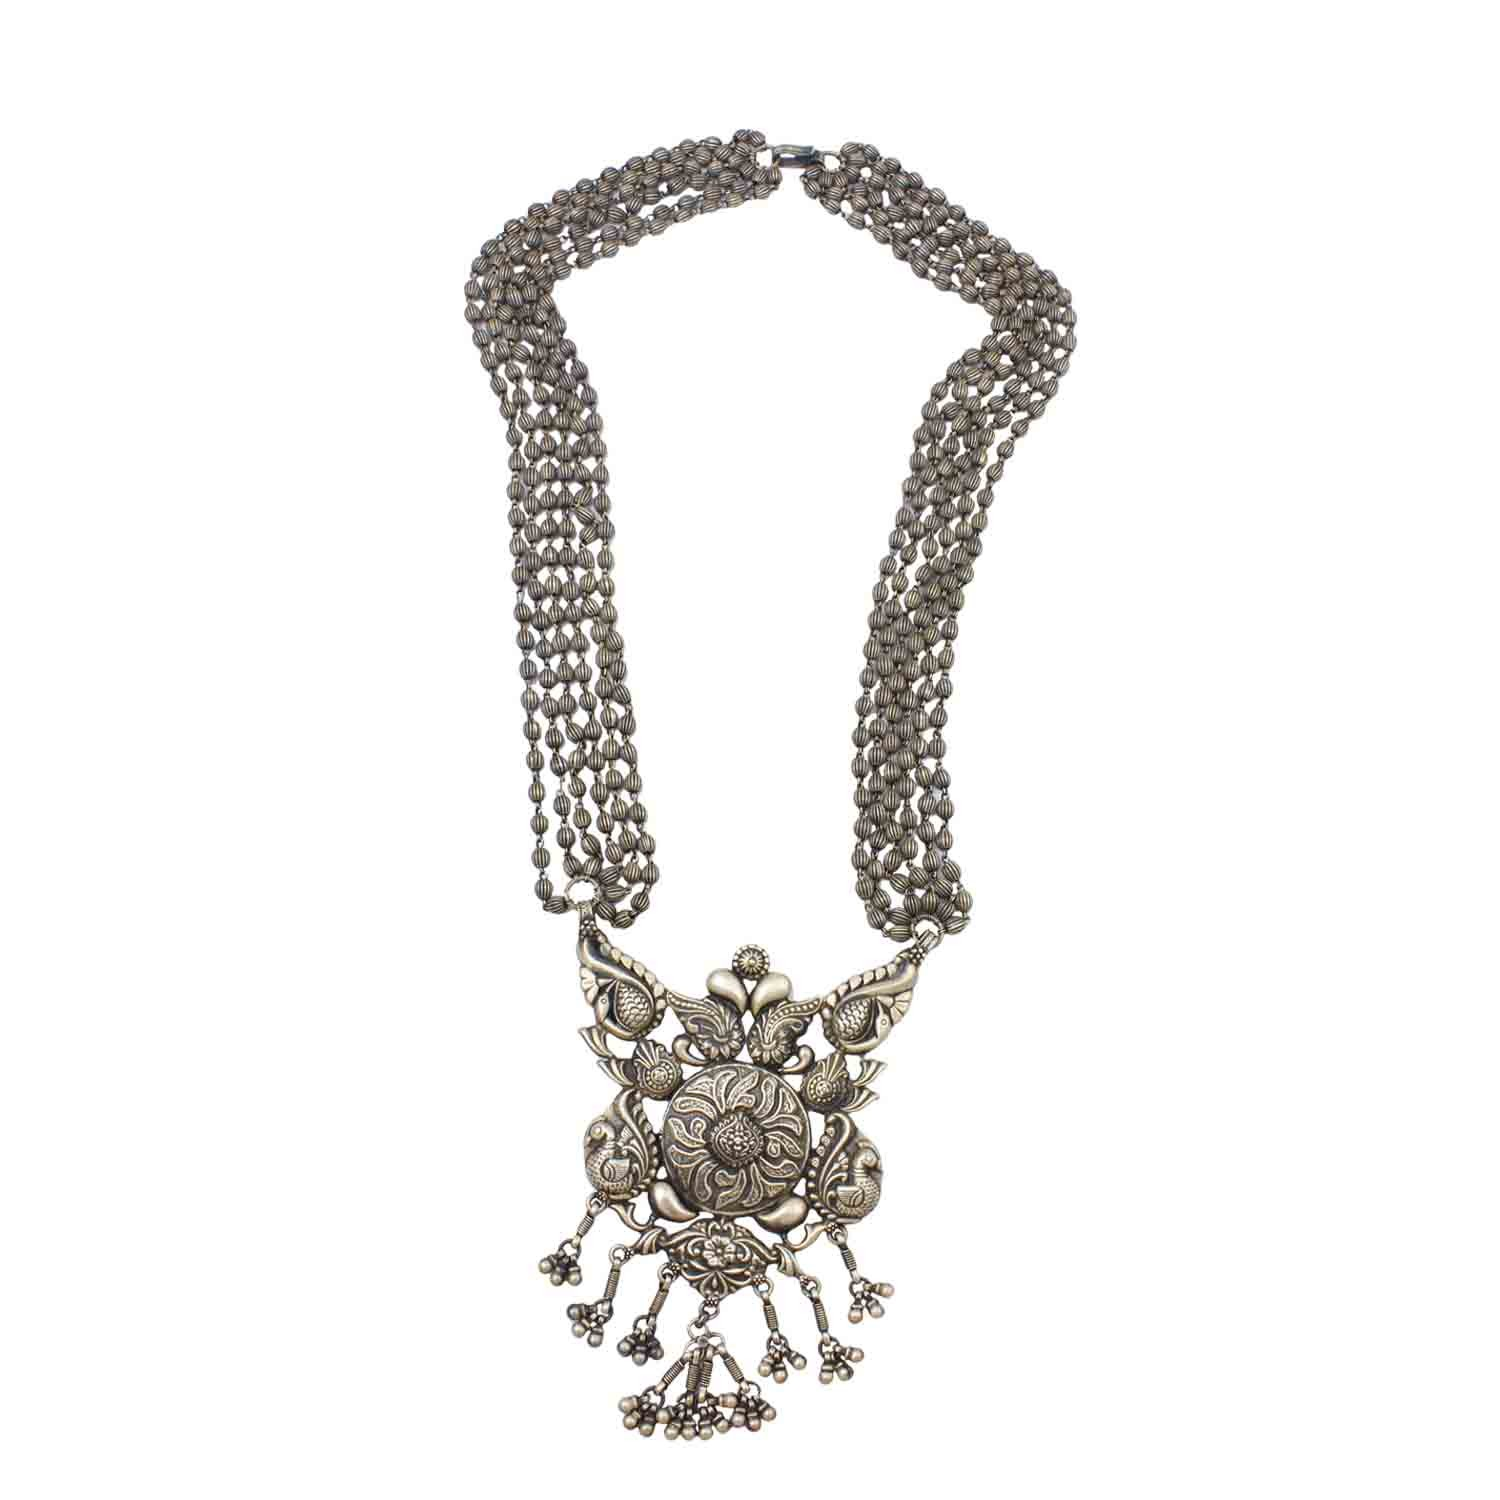 Floral Statement Silver Necklace